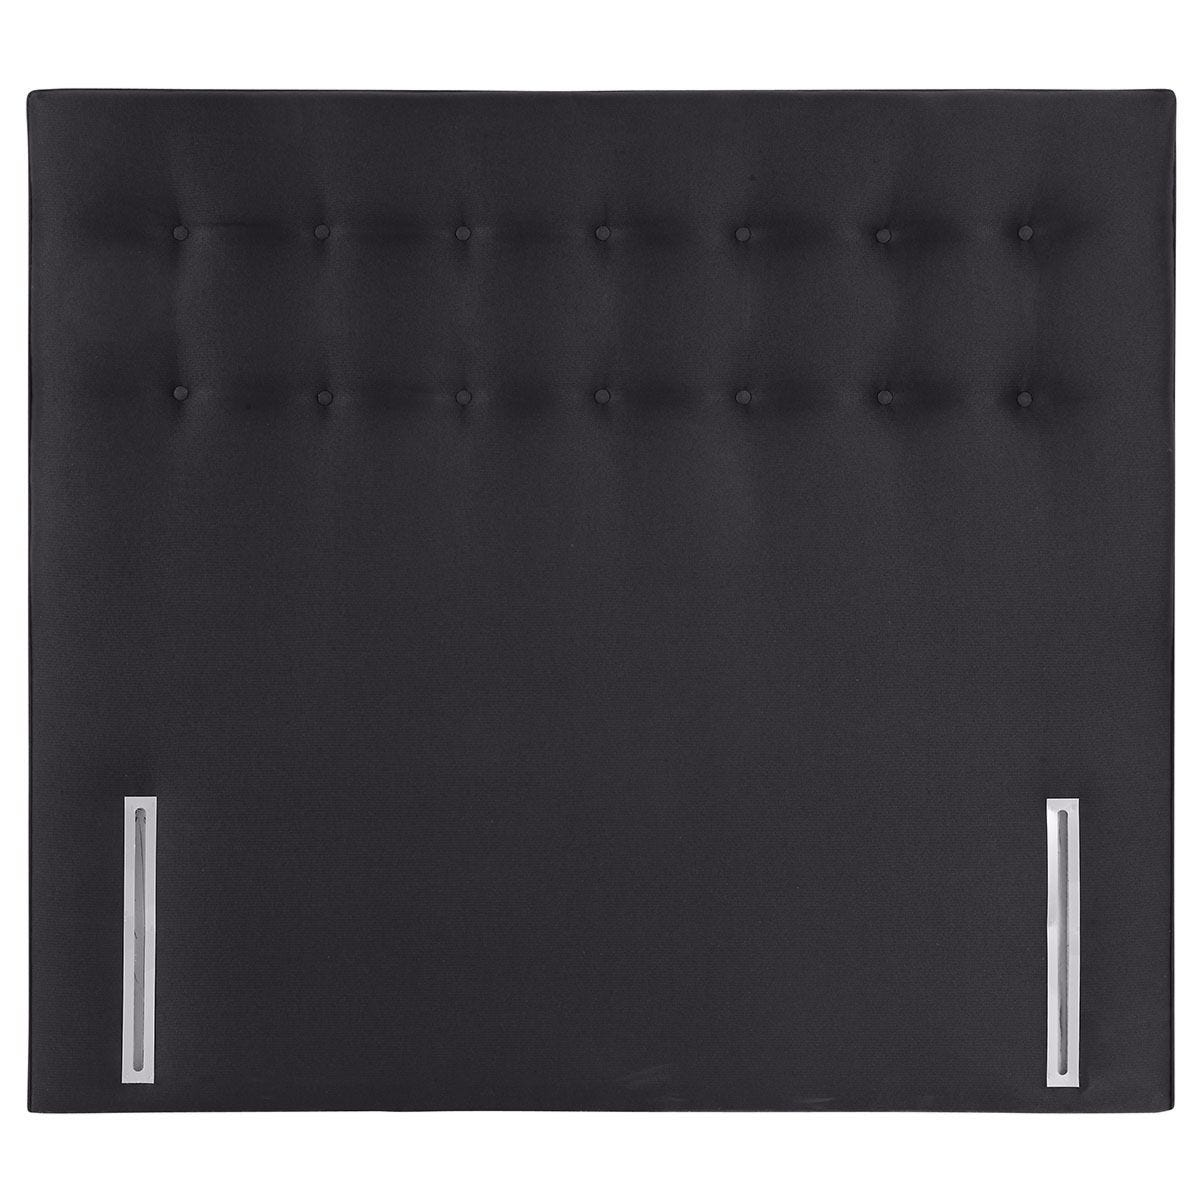 Silentnight Goya Ebony Headboard - King